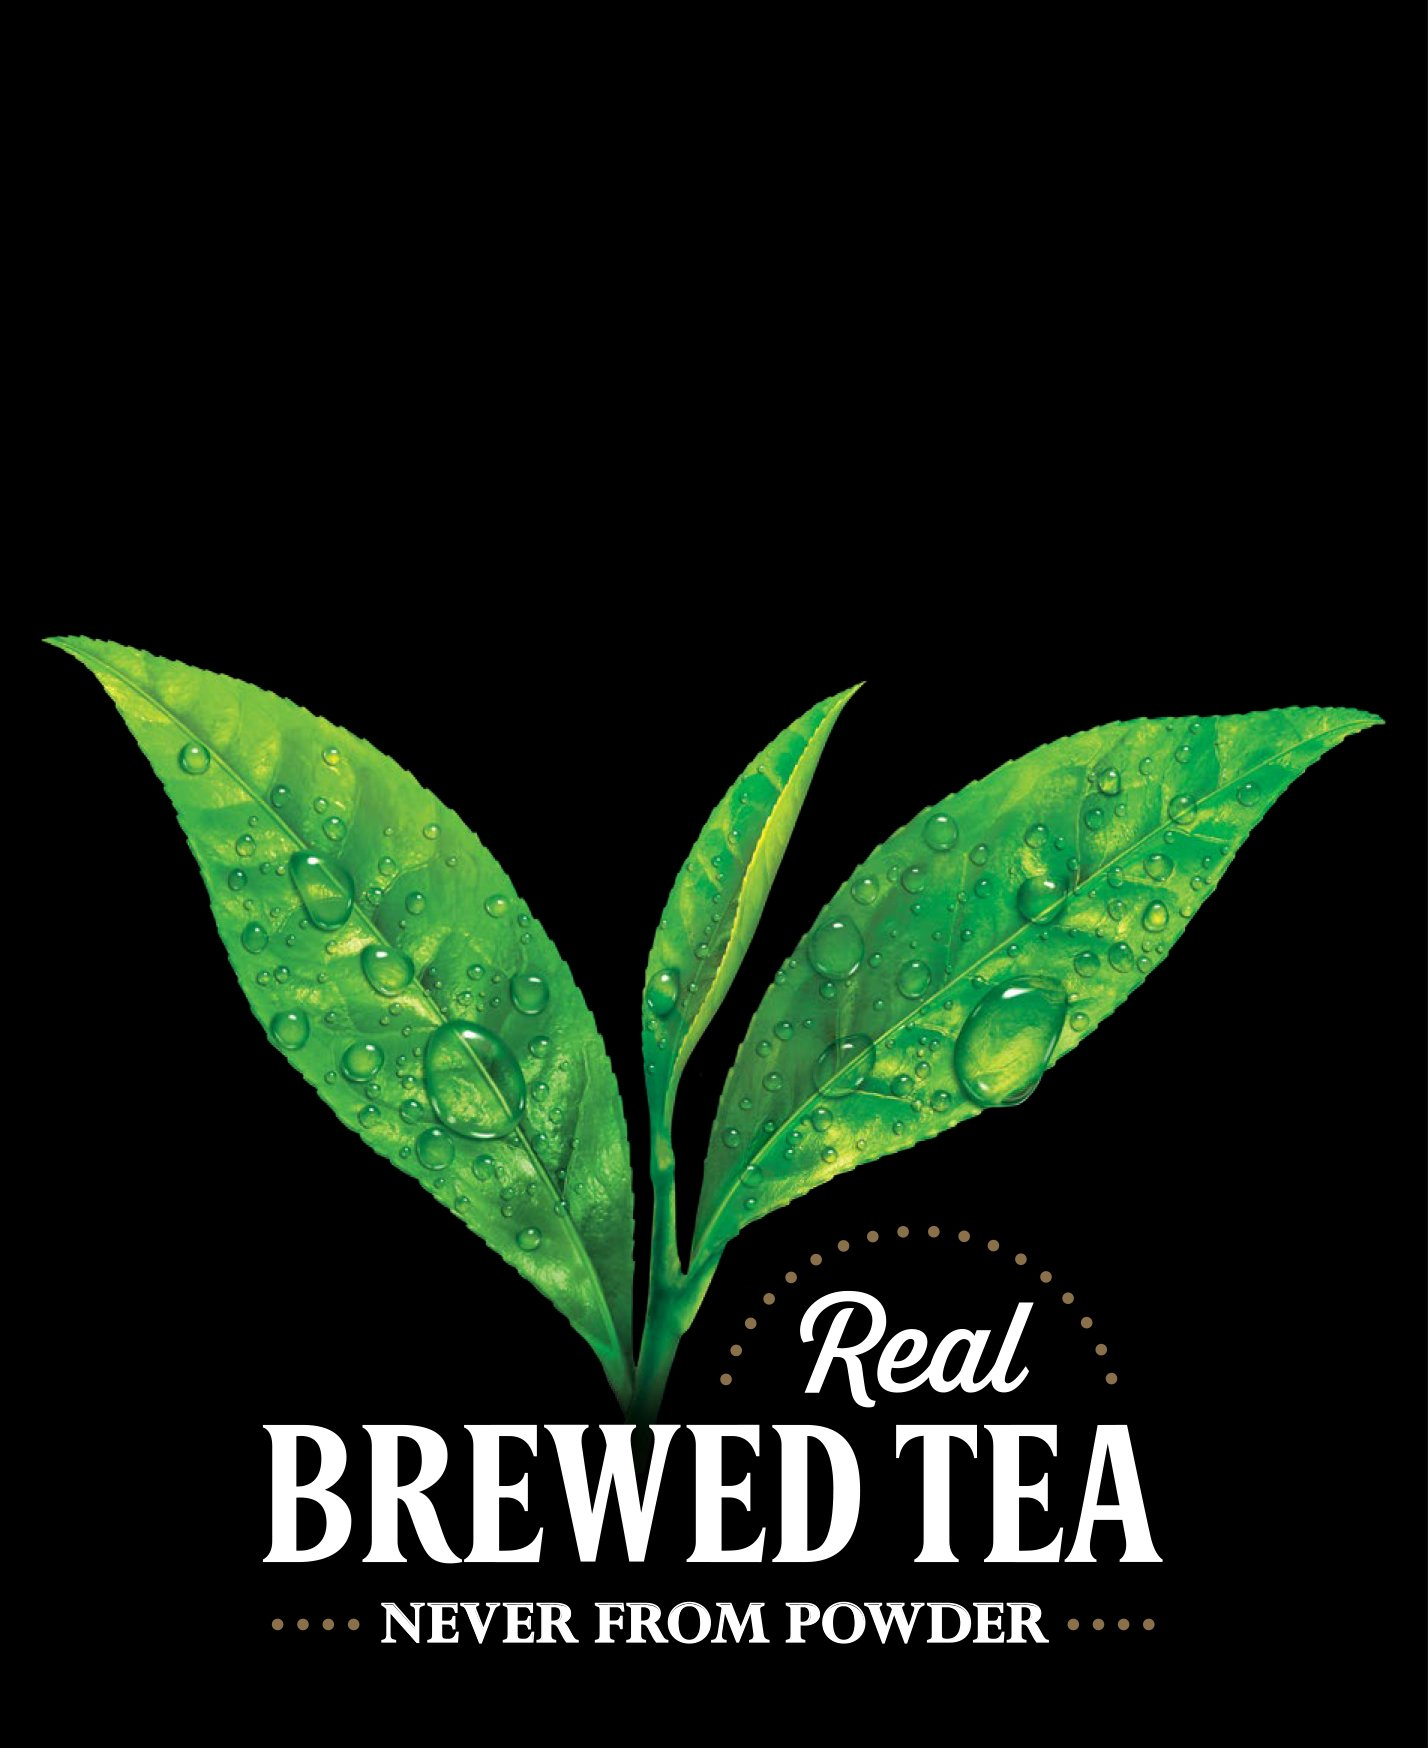 Pure Leaf Iced Tea, Unsweetened, Real Brewed Black Tea, 0 Calories, 18.5 Ounce (Pack of 12) by Pure Leaf (Image #8)